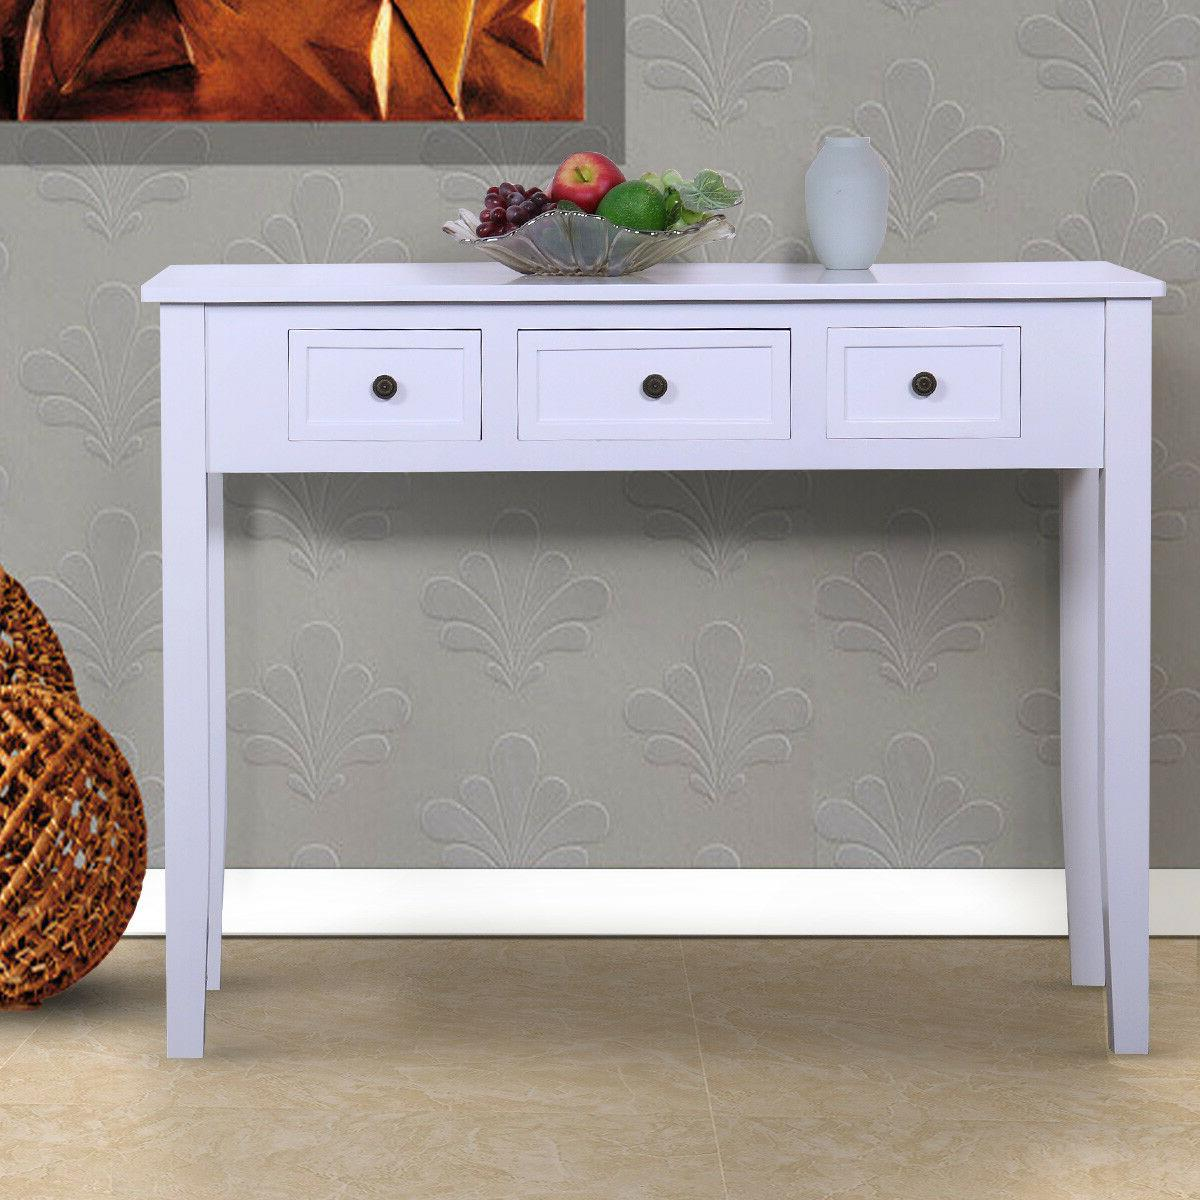 Wood Console Table Study Desk for Home Office White with 3 D